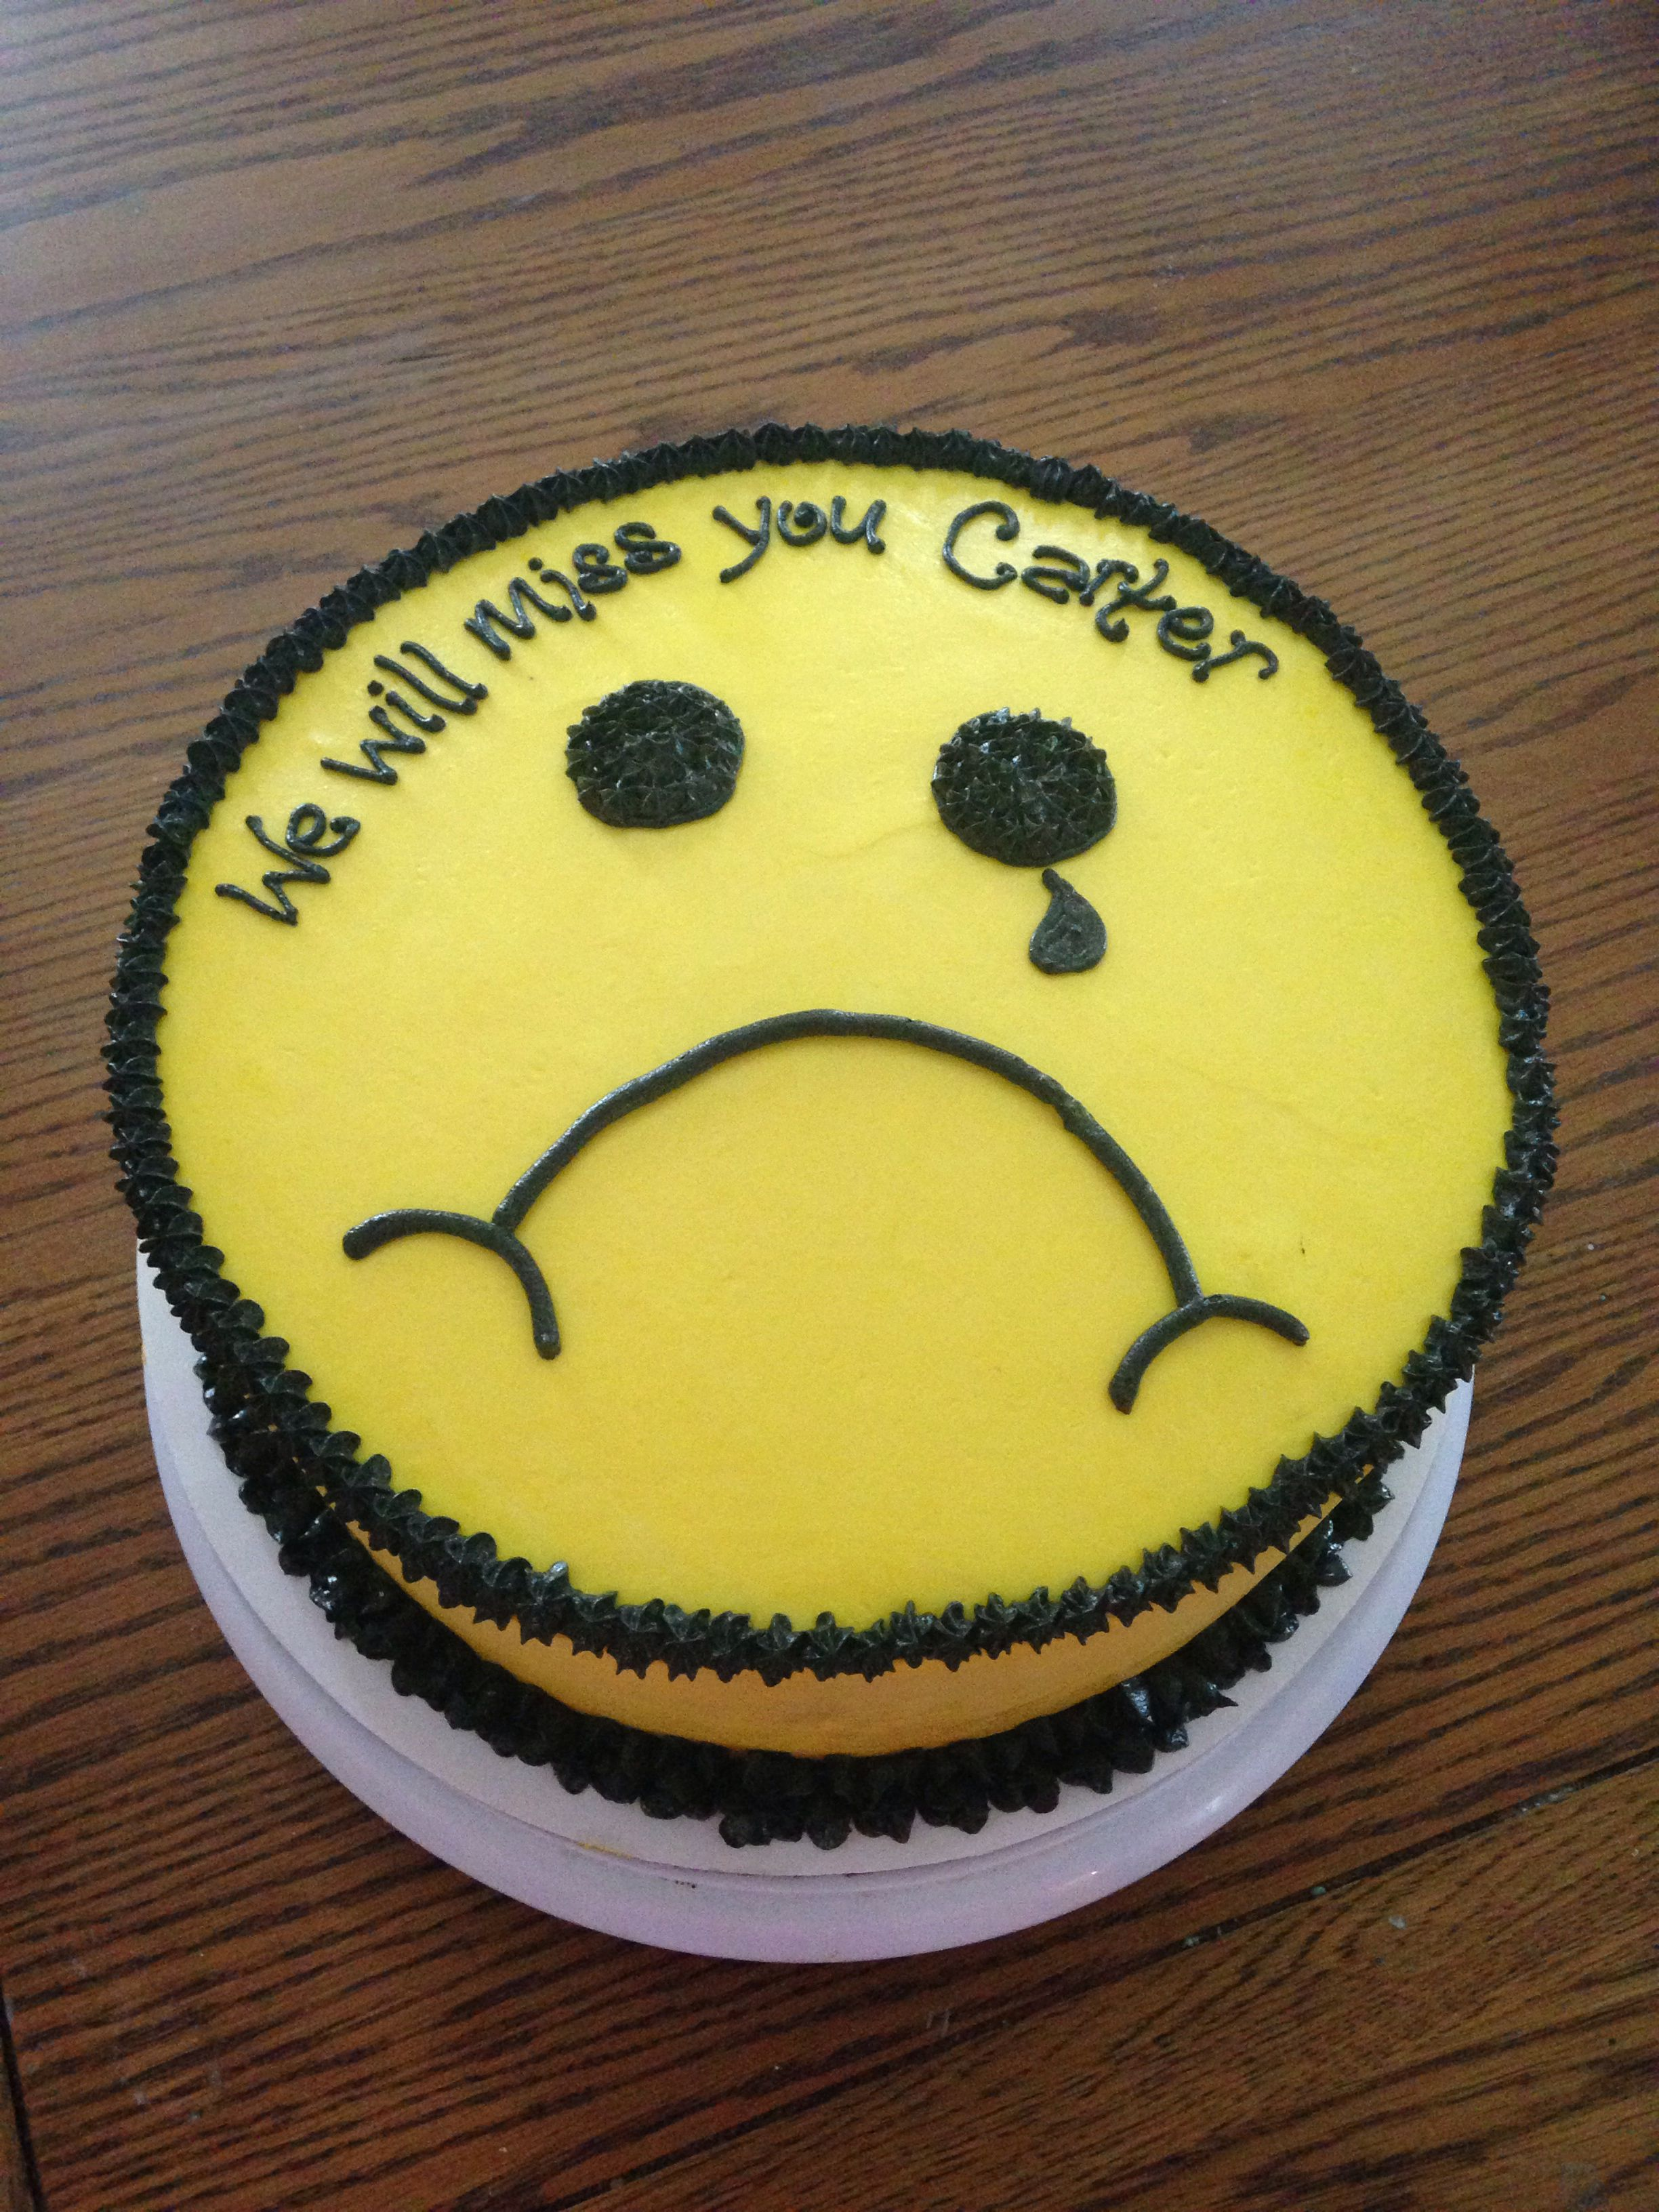 We Will Miss You Cake Sad Face Some Cakes I Ve Made